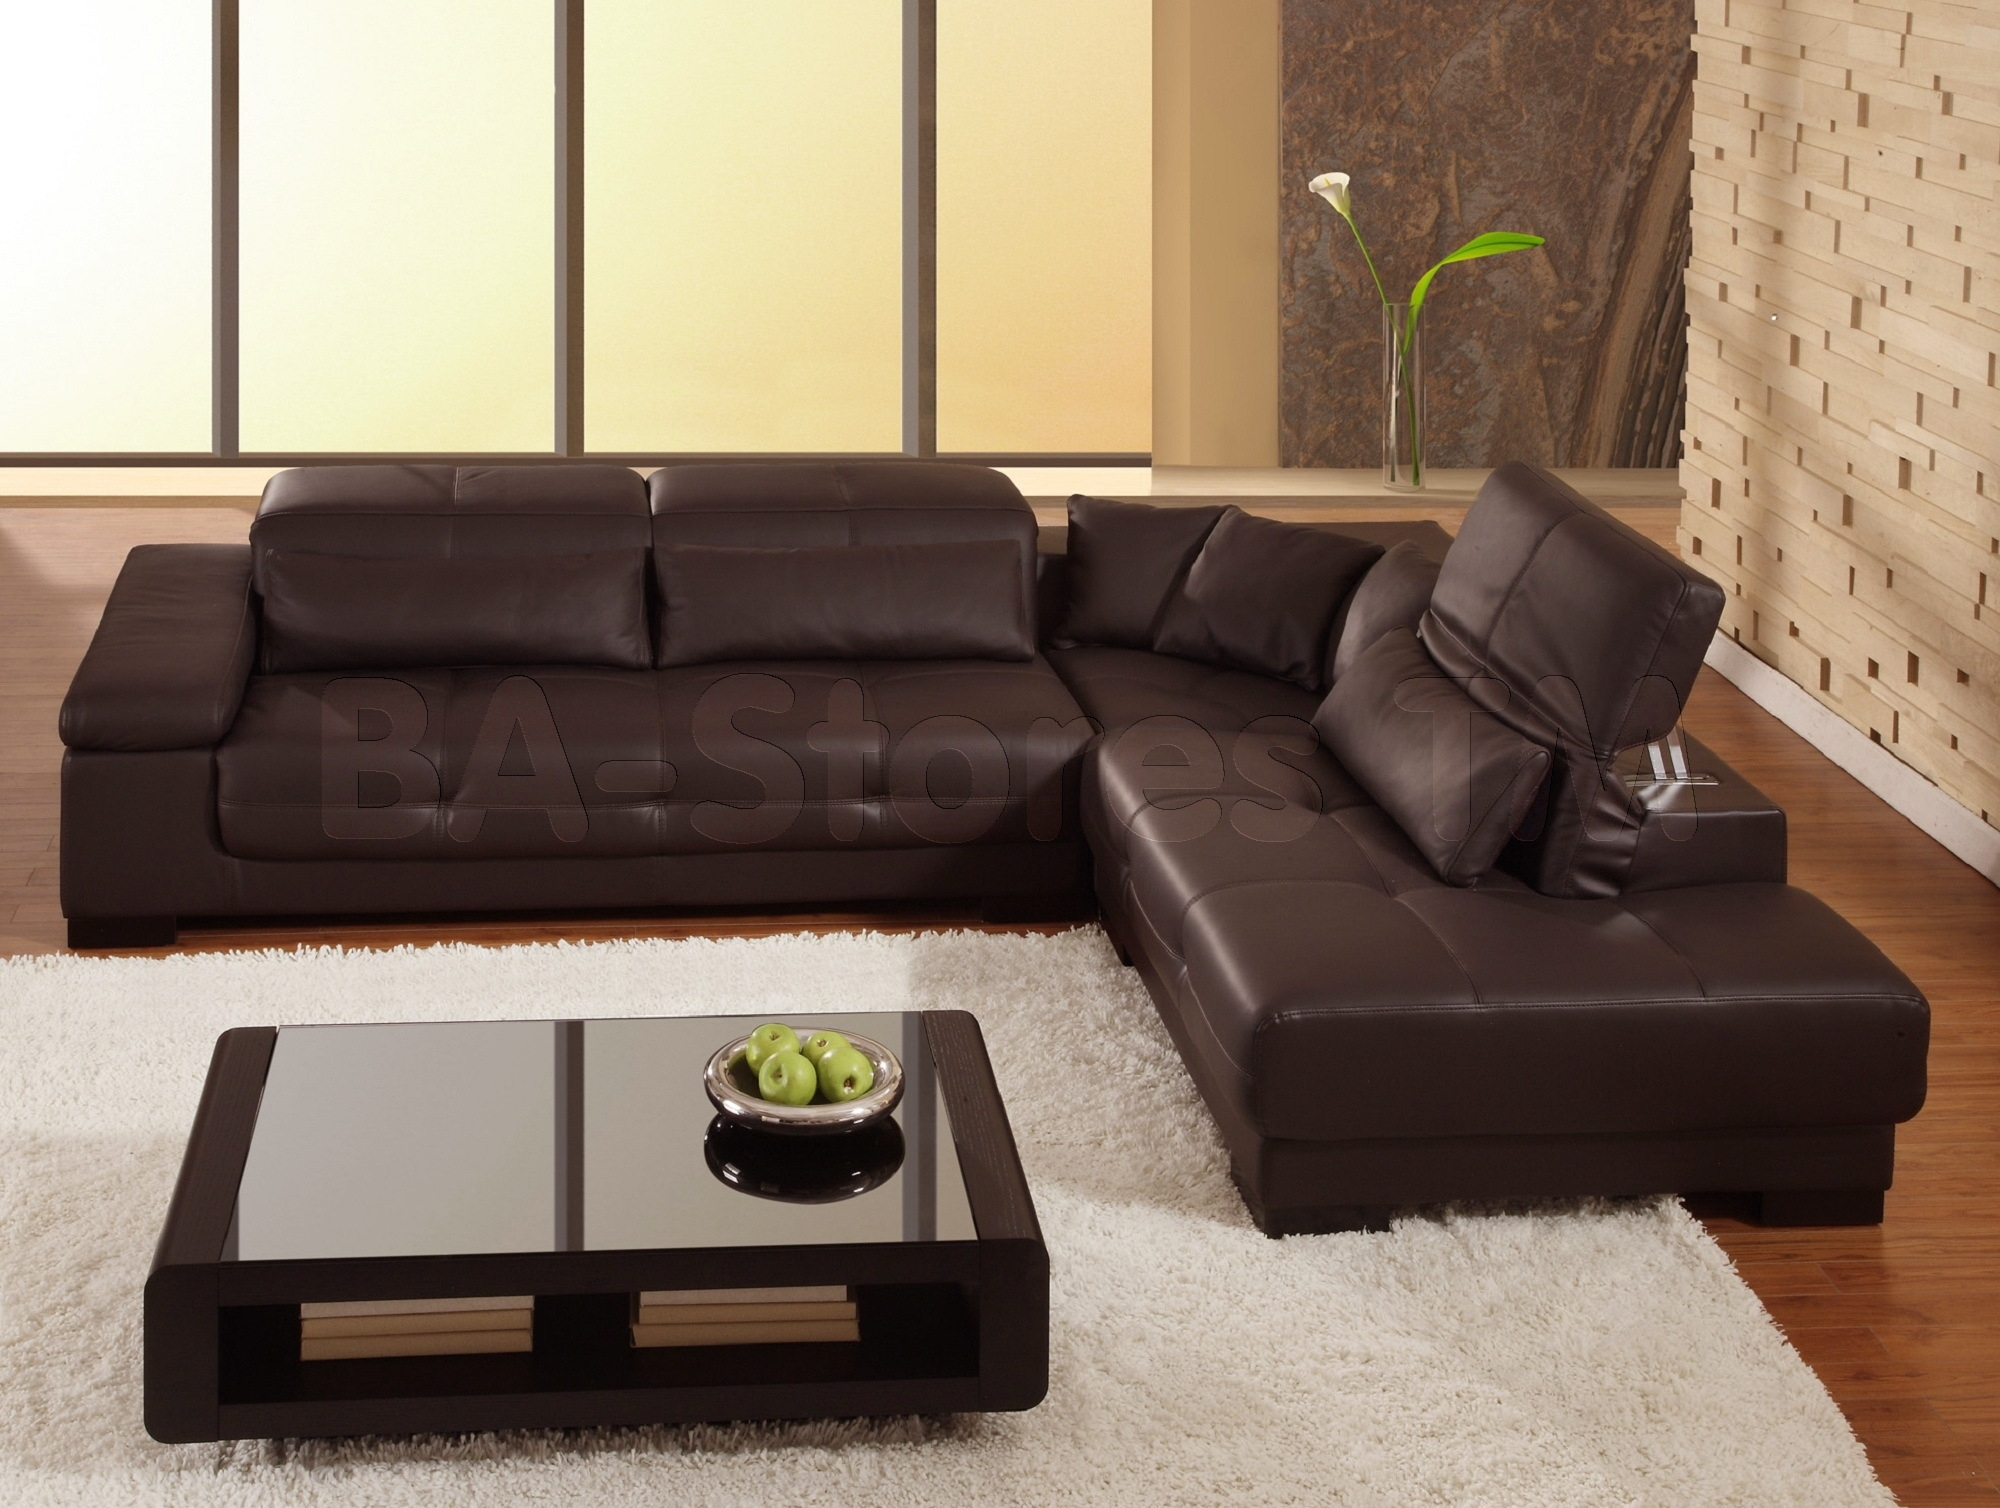 Leather Sectional Sofas Raleigh Nc | Catosfera For Raleigh Sectional Sofas (Image 8 of 10)